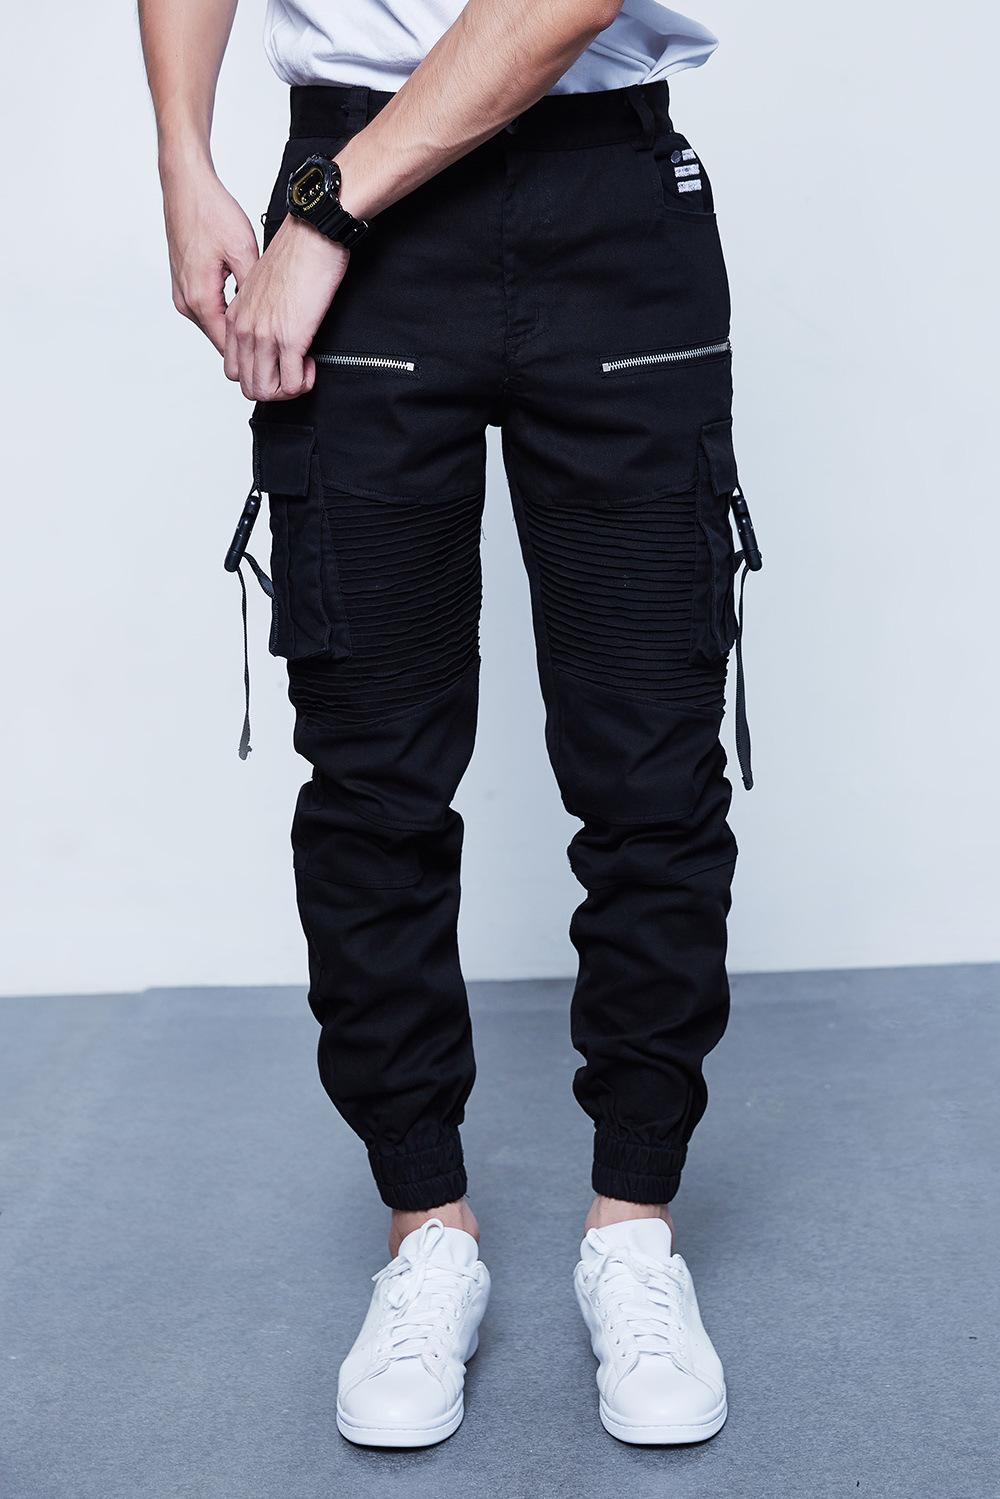 TKPA Multi Pockets Pants Mens Spring Clothing Black Cargo Long Pants Button Fly Design Slim Fit Trousers Clothes Hip Hop Punk